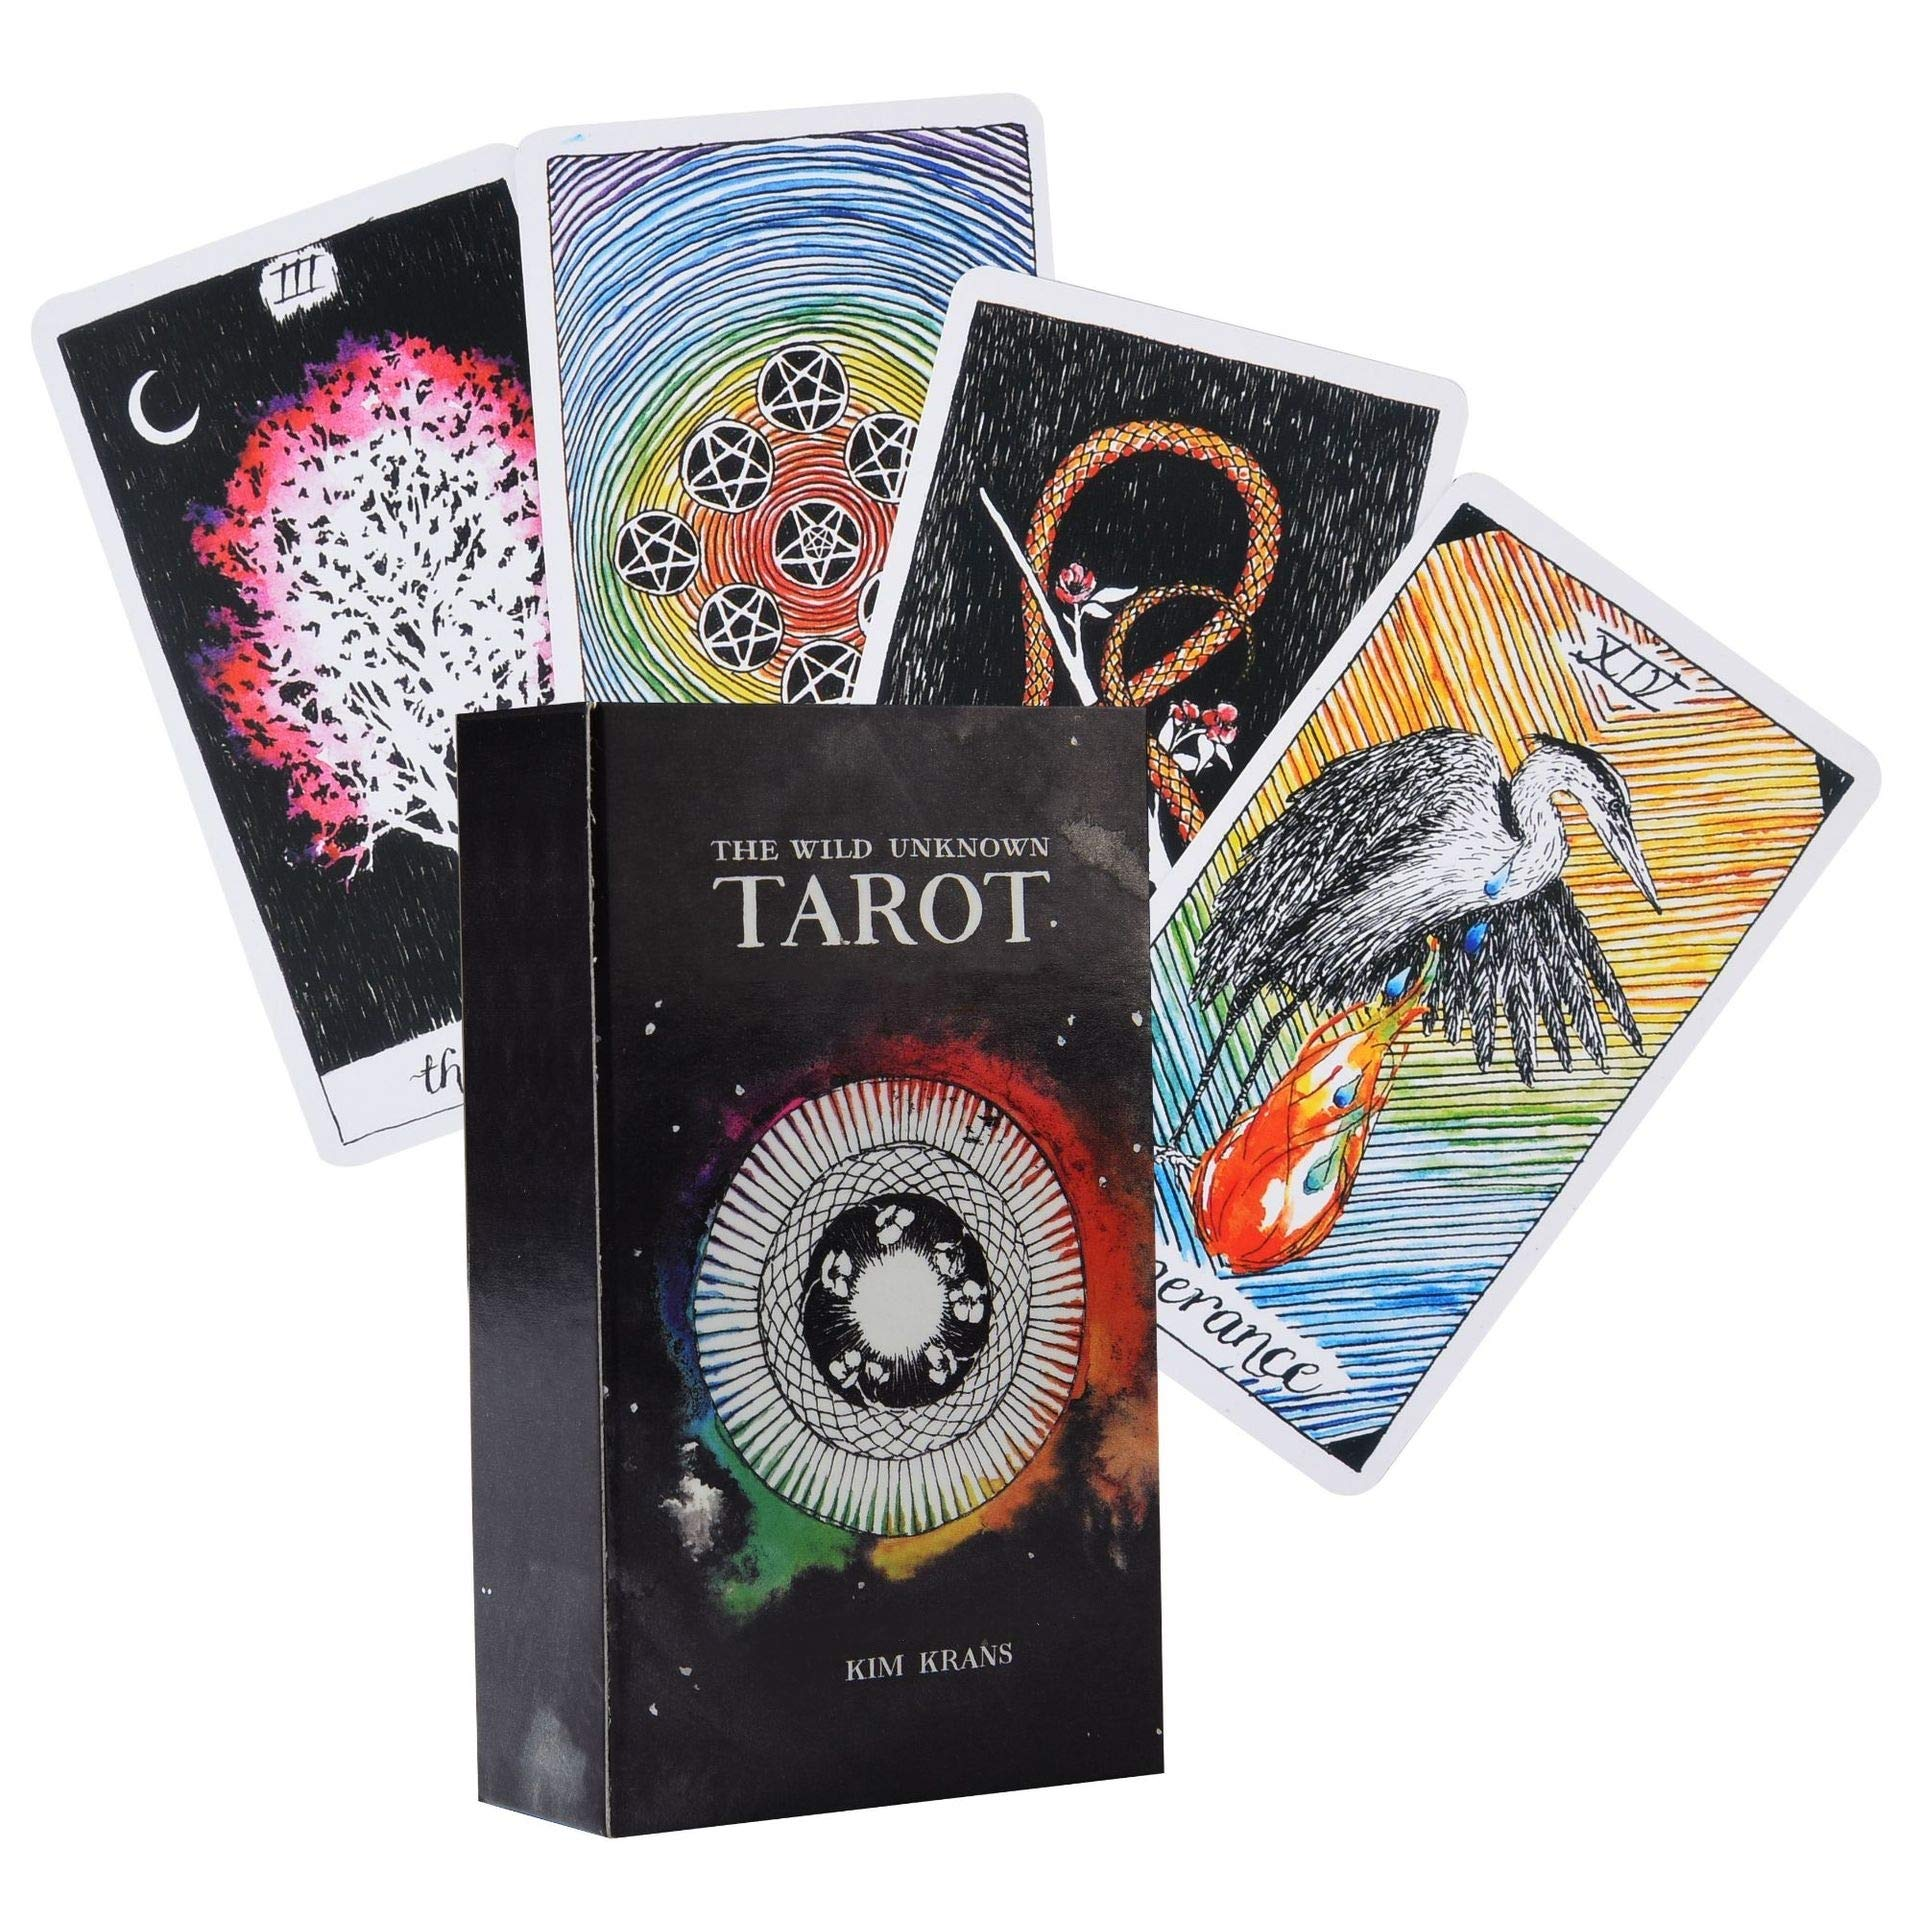 LSXX Great Replacement The Wild Unknown Tarot Deck with PDF Guidebook